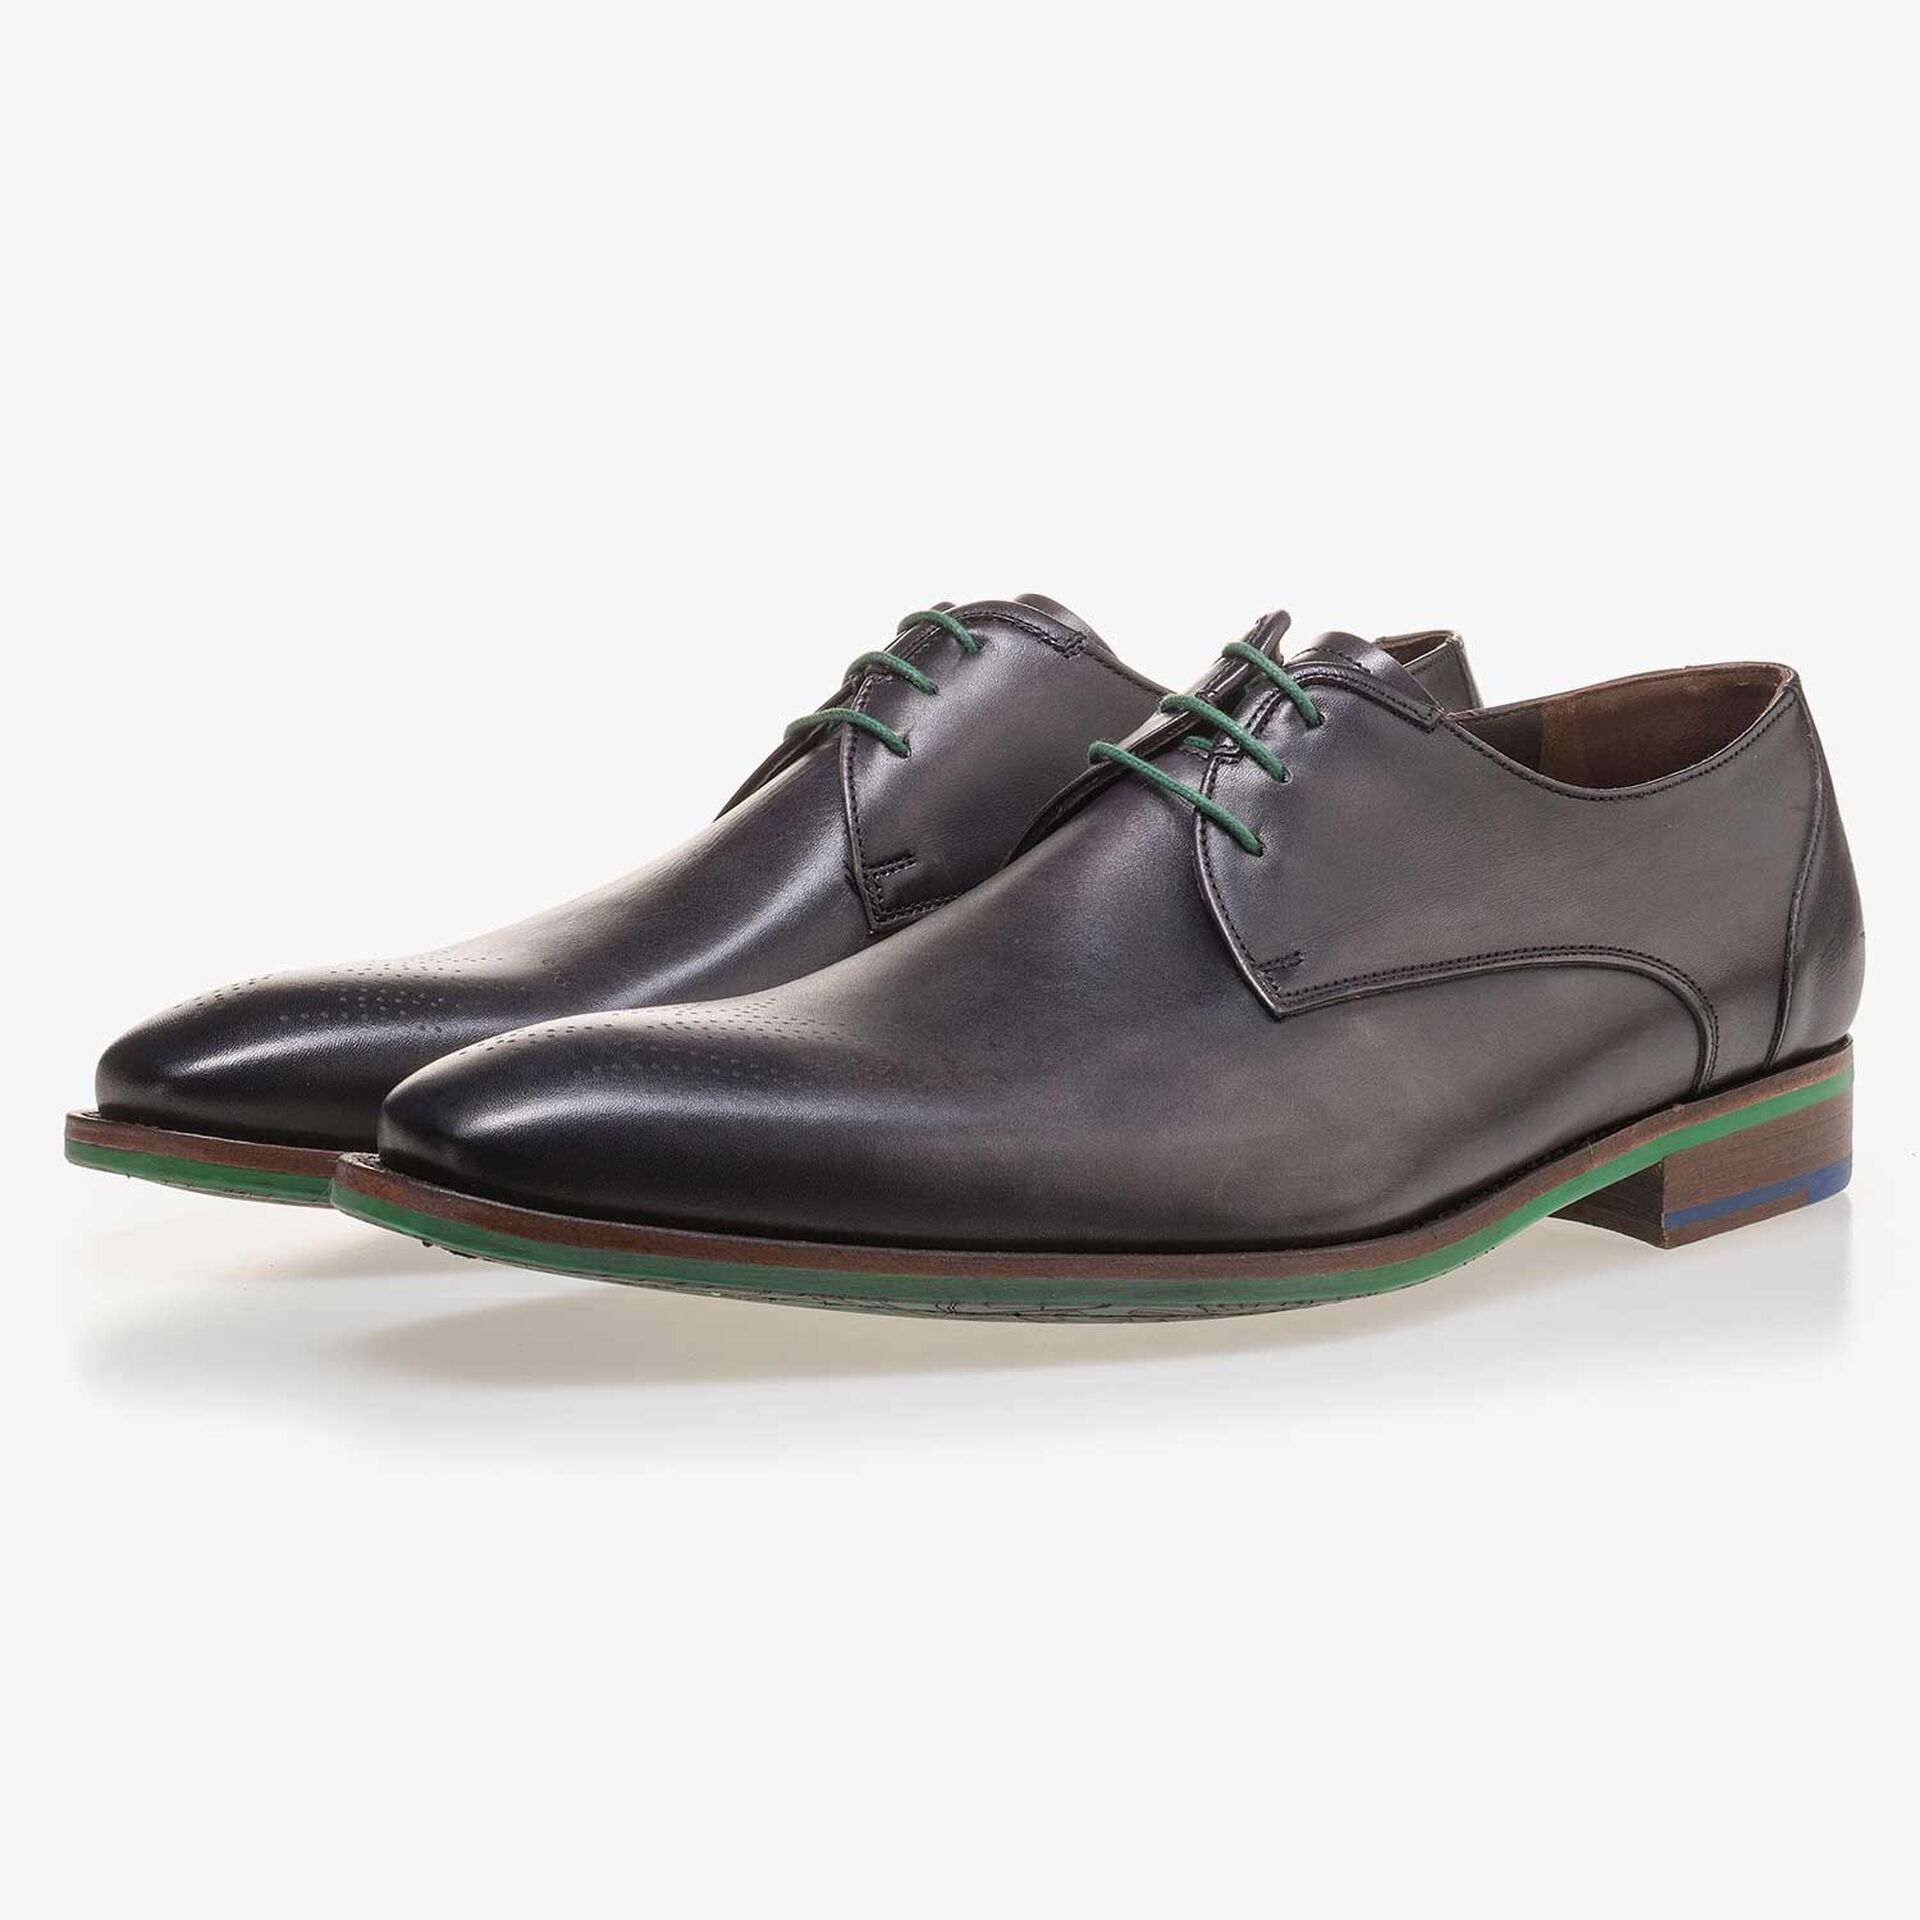 Anthracite grey lace shoe made of leather